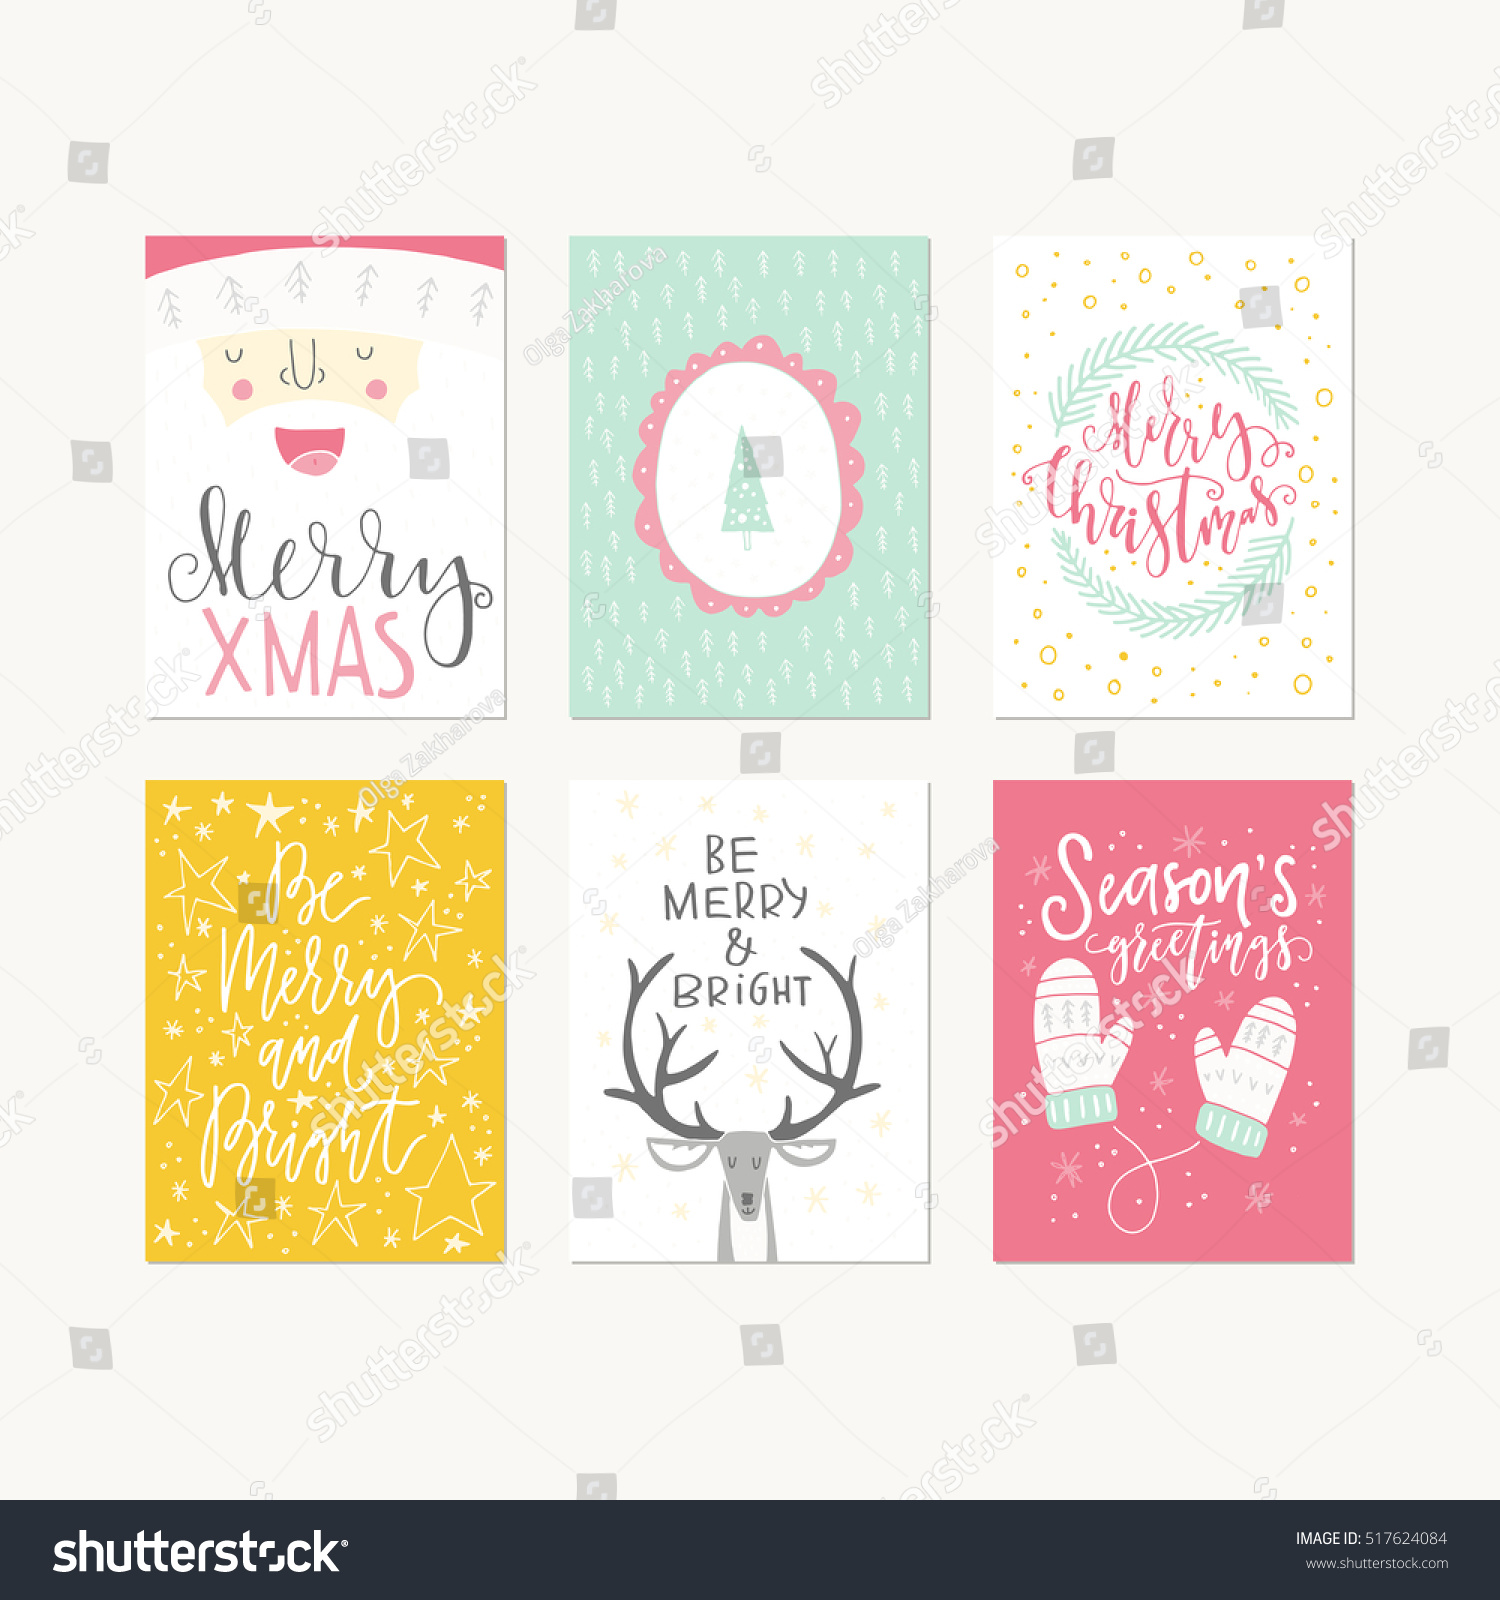 collection handdrawn christmas card templates new stock vector collection of handdrawn christmas card templates new year present tags made in vector